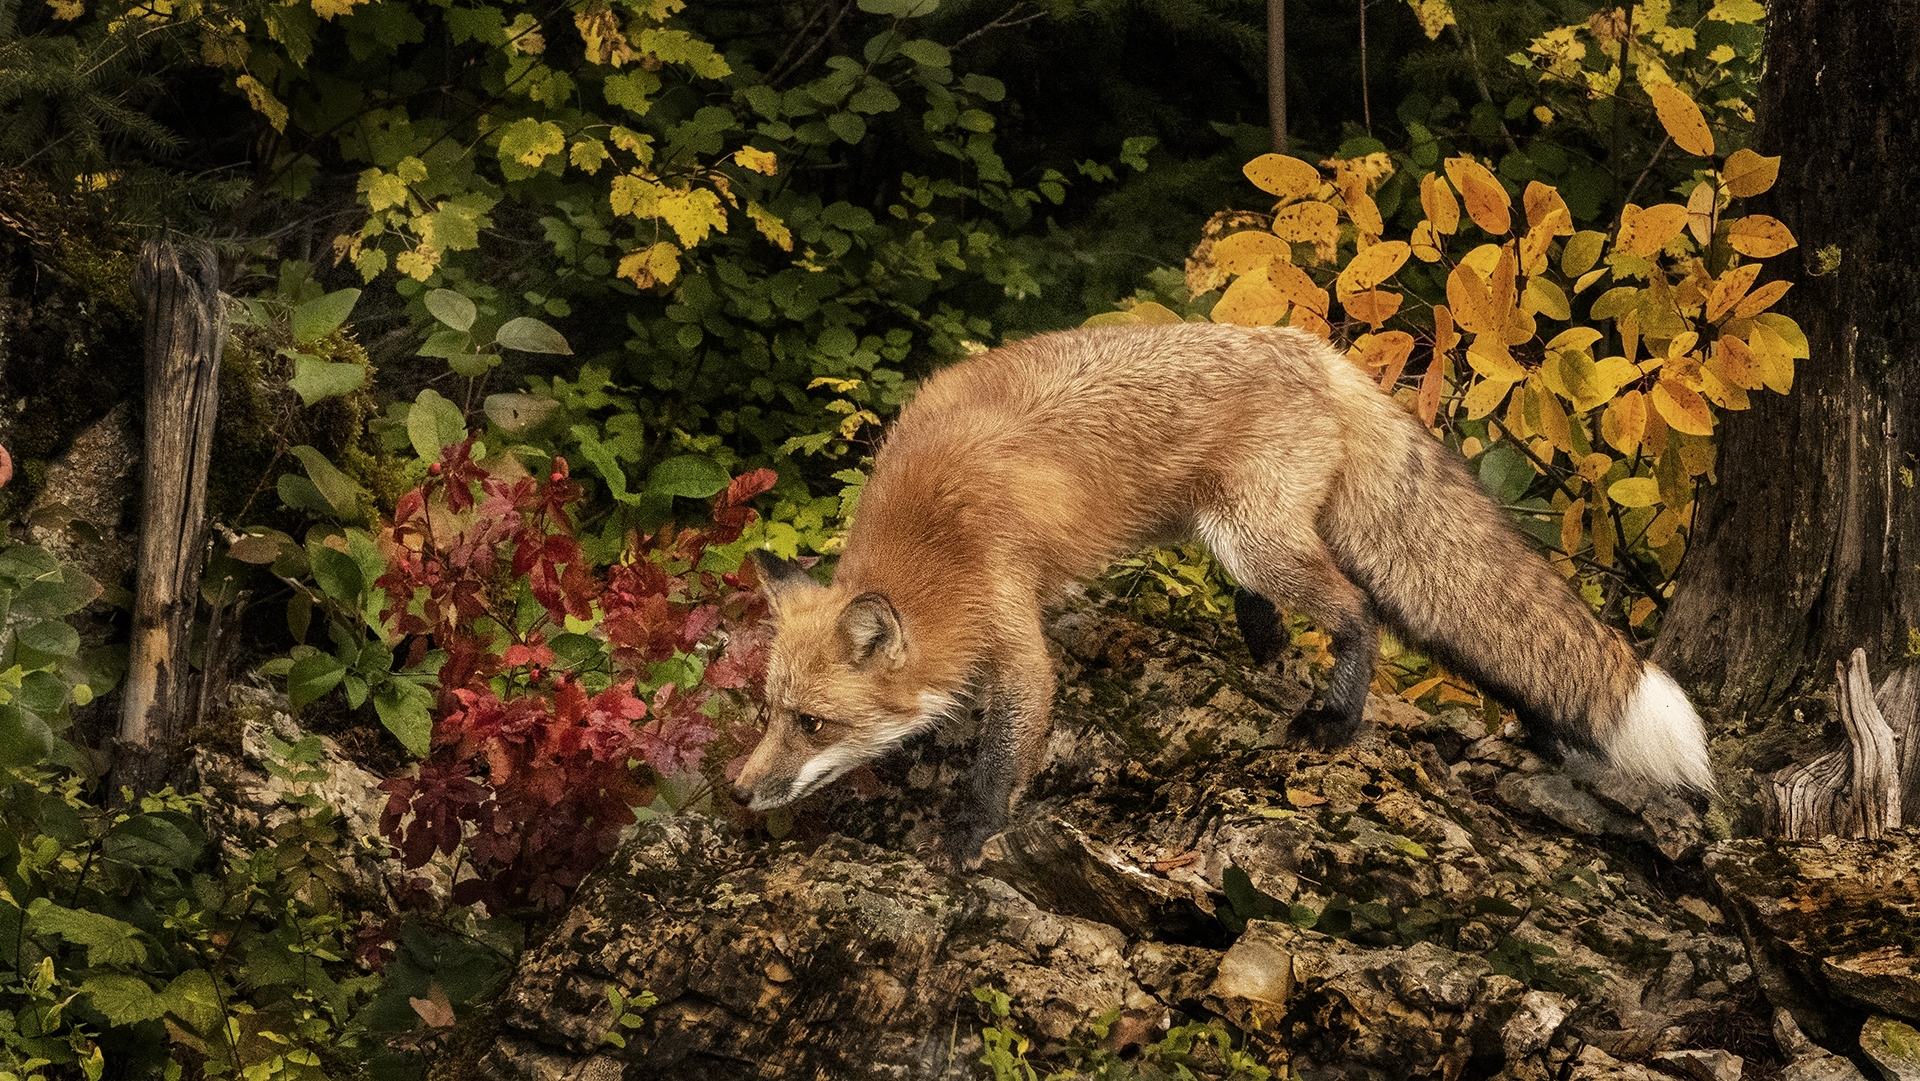 A-Red-Fox-an-omnivore-searches-for-its-next-meal-its-thick-tail-aids-its-balance-and-acts-as-a-warm-cover-in-cold-weather-NM-1-Place-by-Bill-Chambard-CC